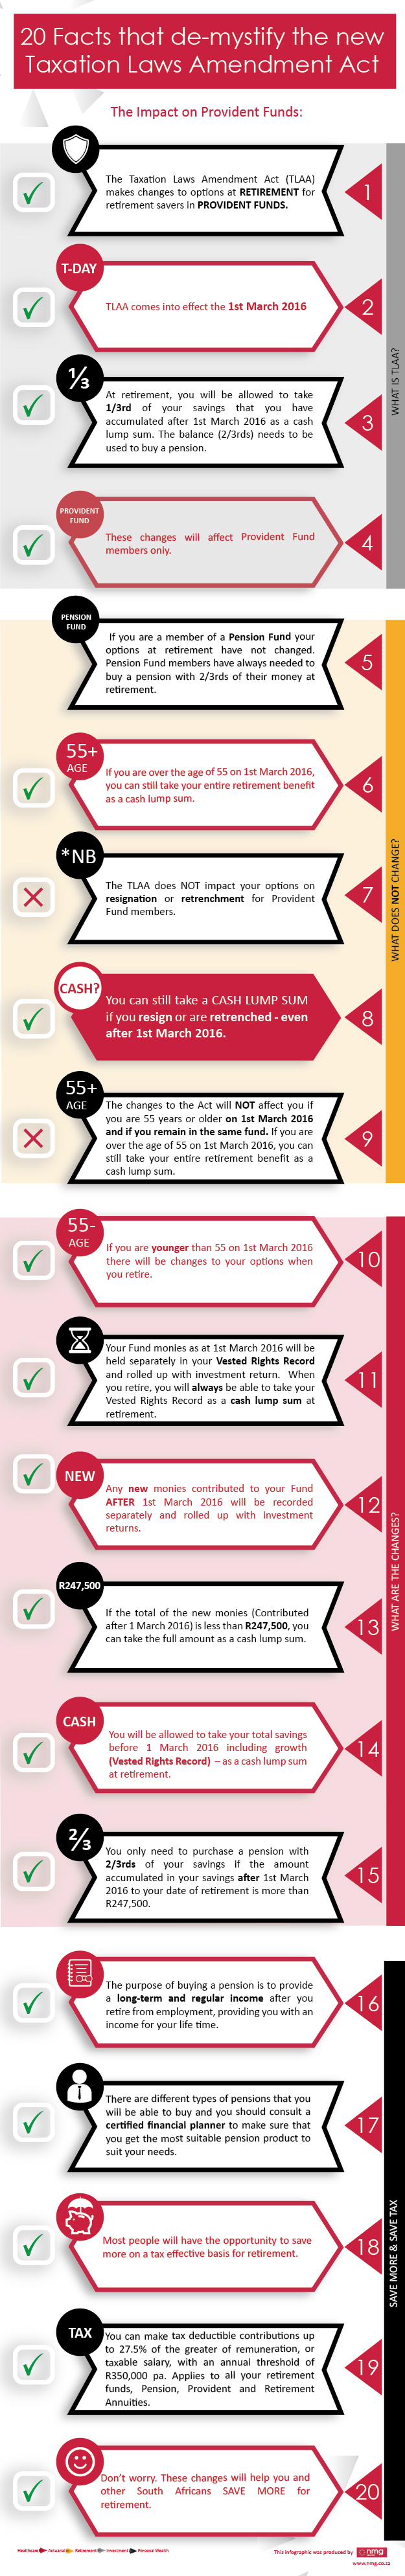 taxation_laws_amendment_act_infographic_nmg_benefits_final_(010216)